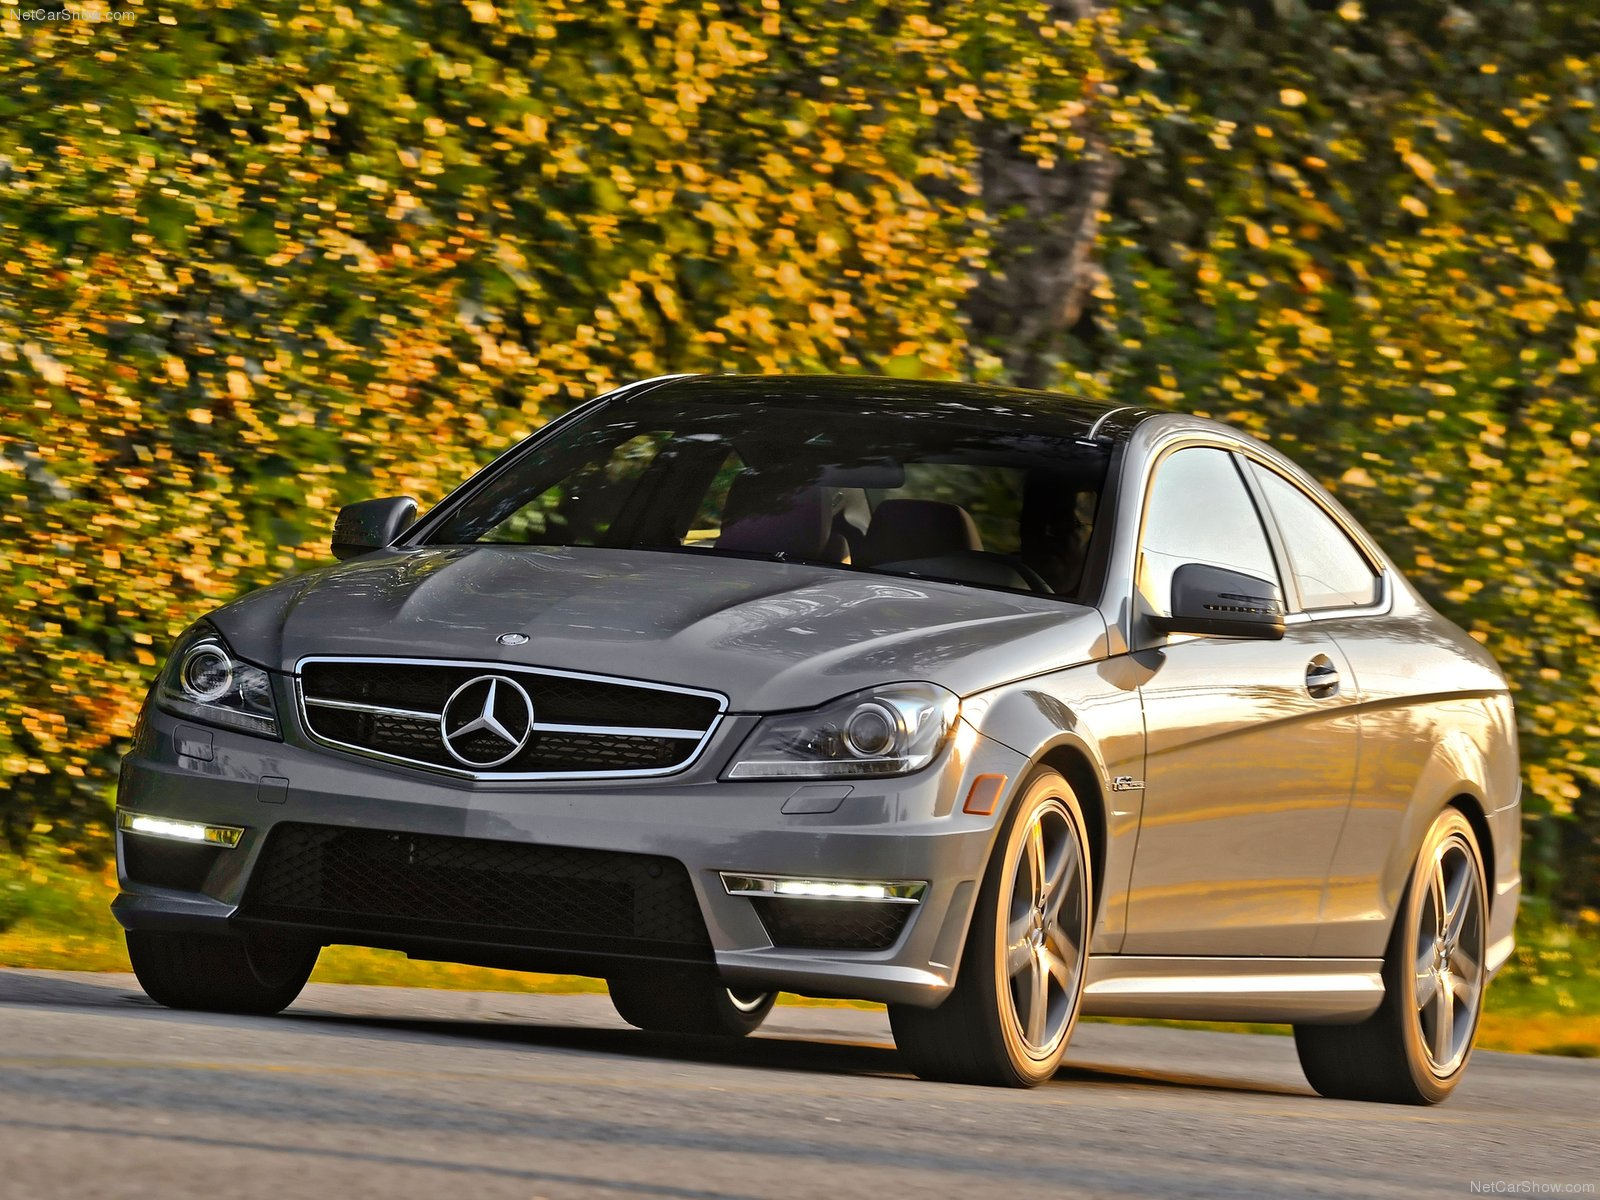 Mercedes-Benz C63 AMG Coupe photo 84572